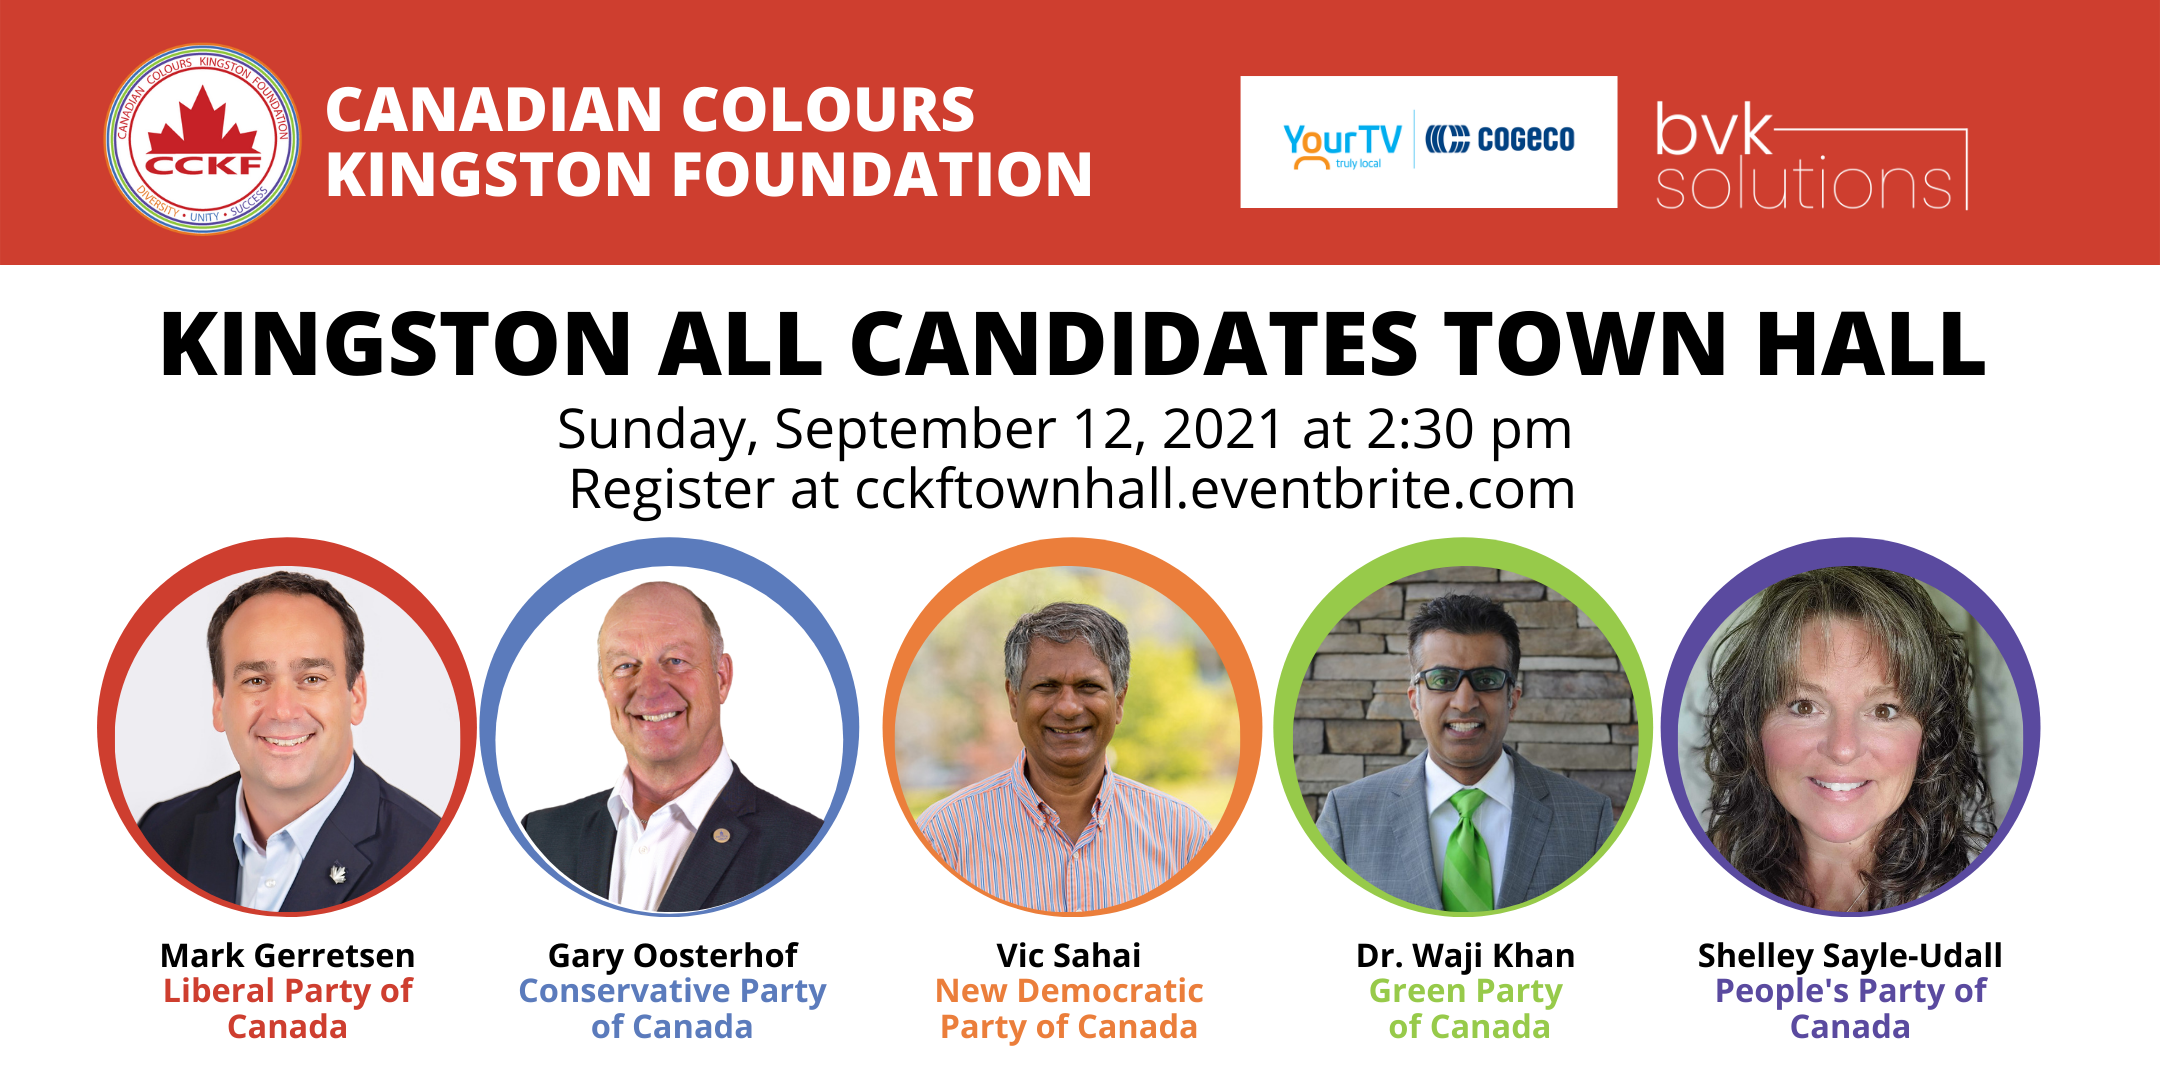 All Candidates Town Hall